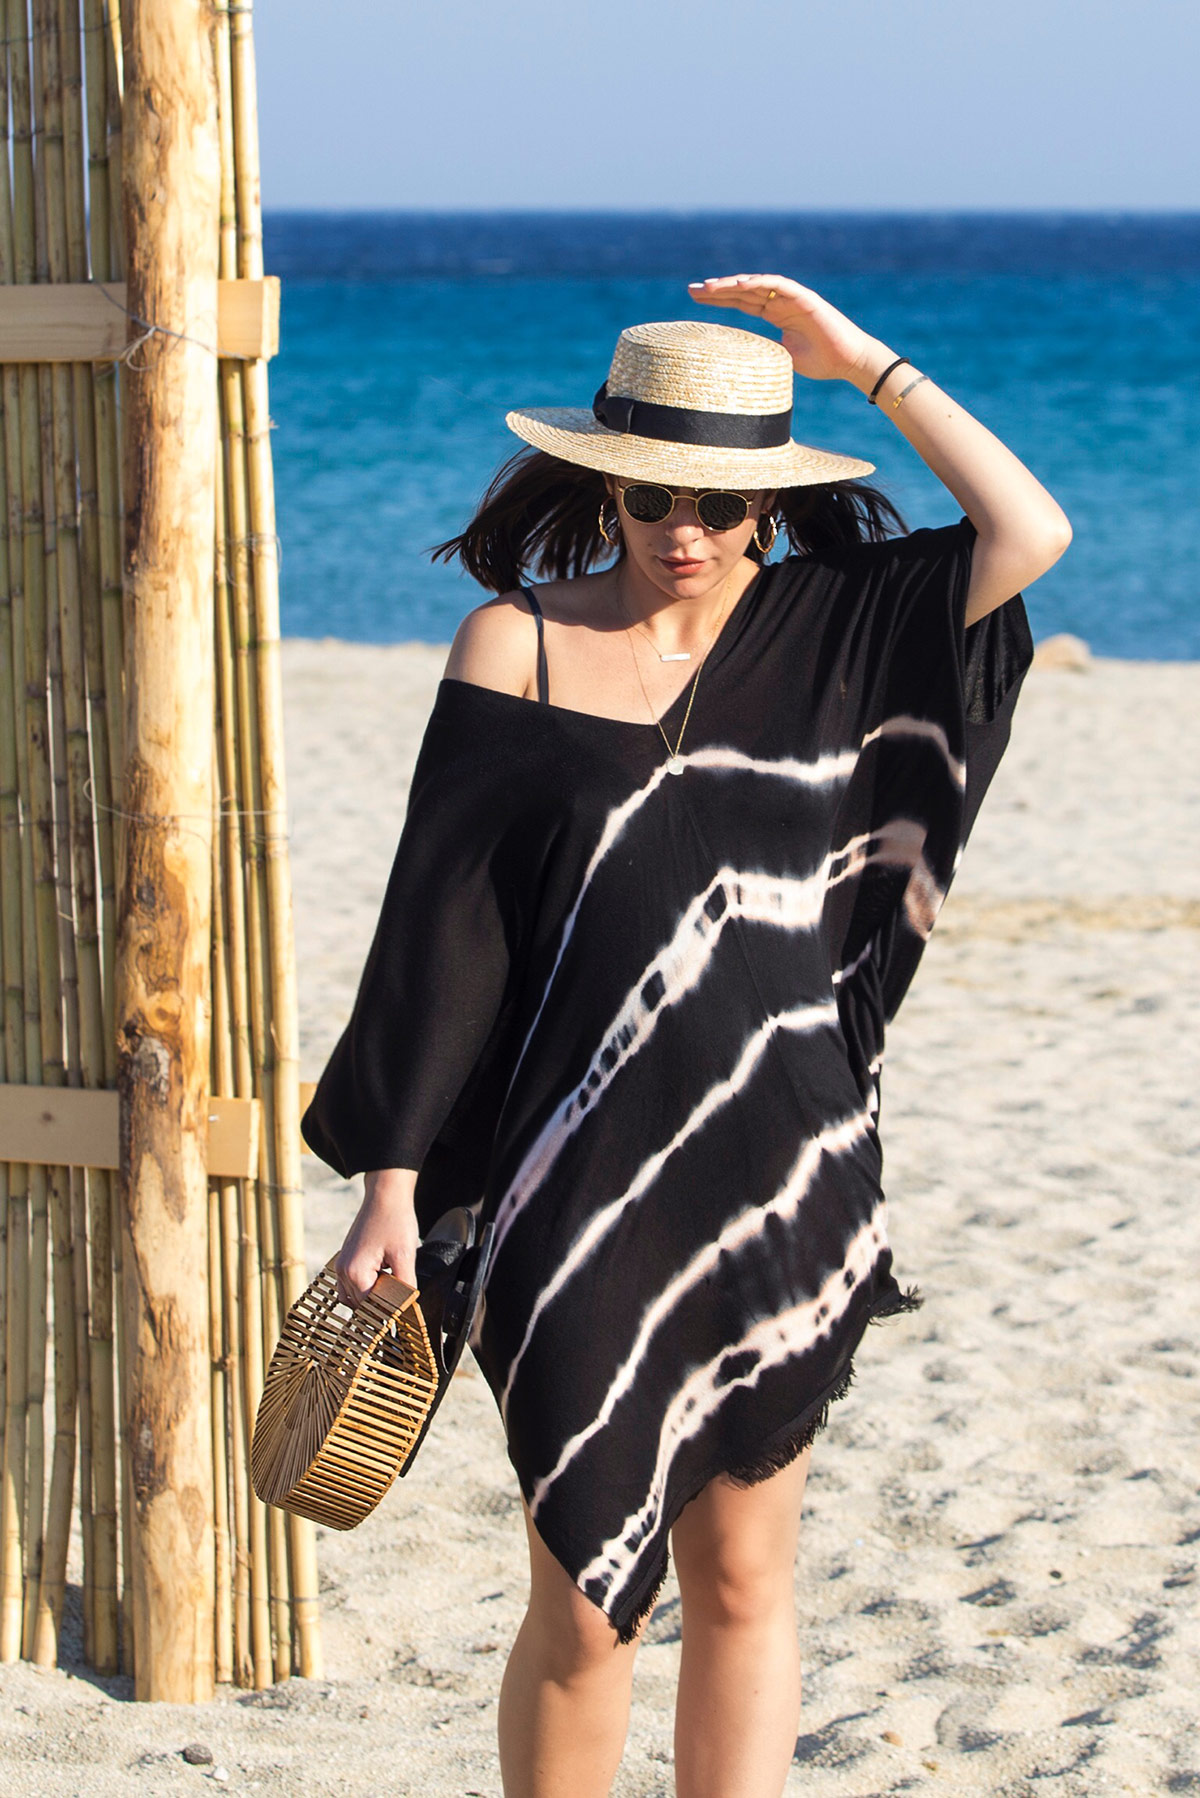 Tie Dye Beach Look in Mykonos - by Stella Asteria Fashion & Lifestyle Blogger